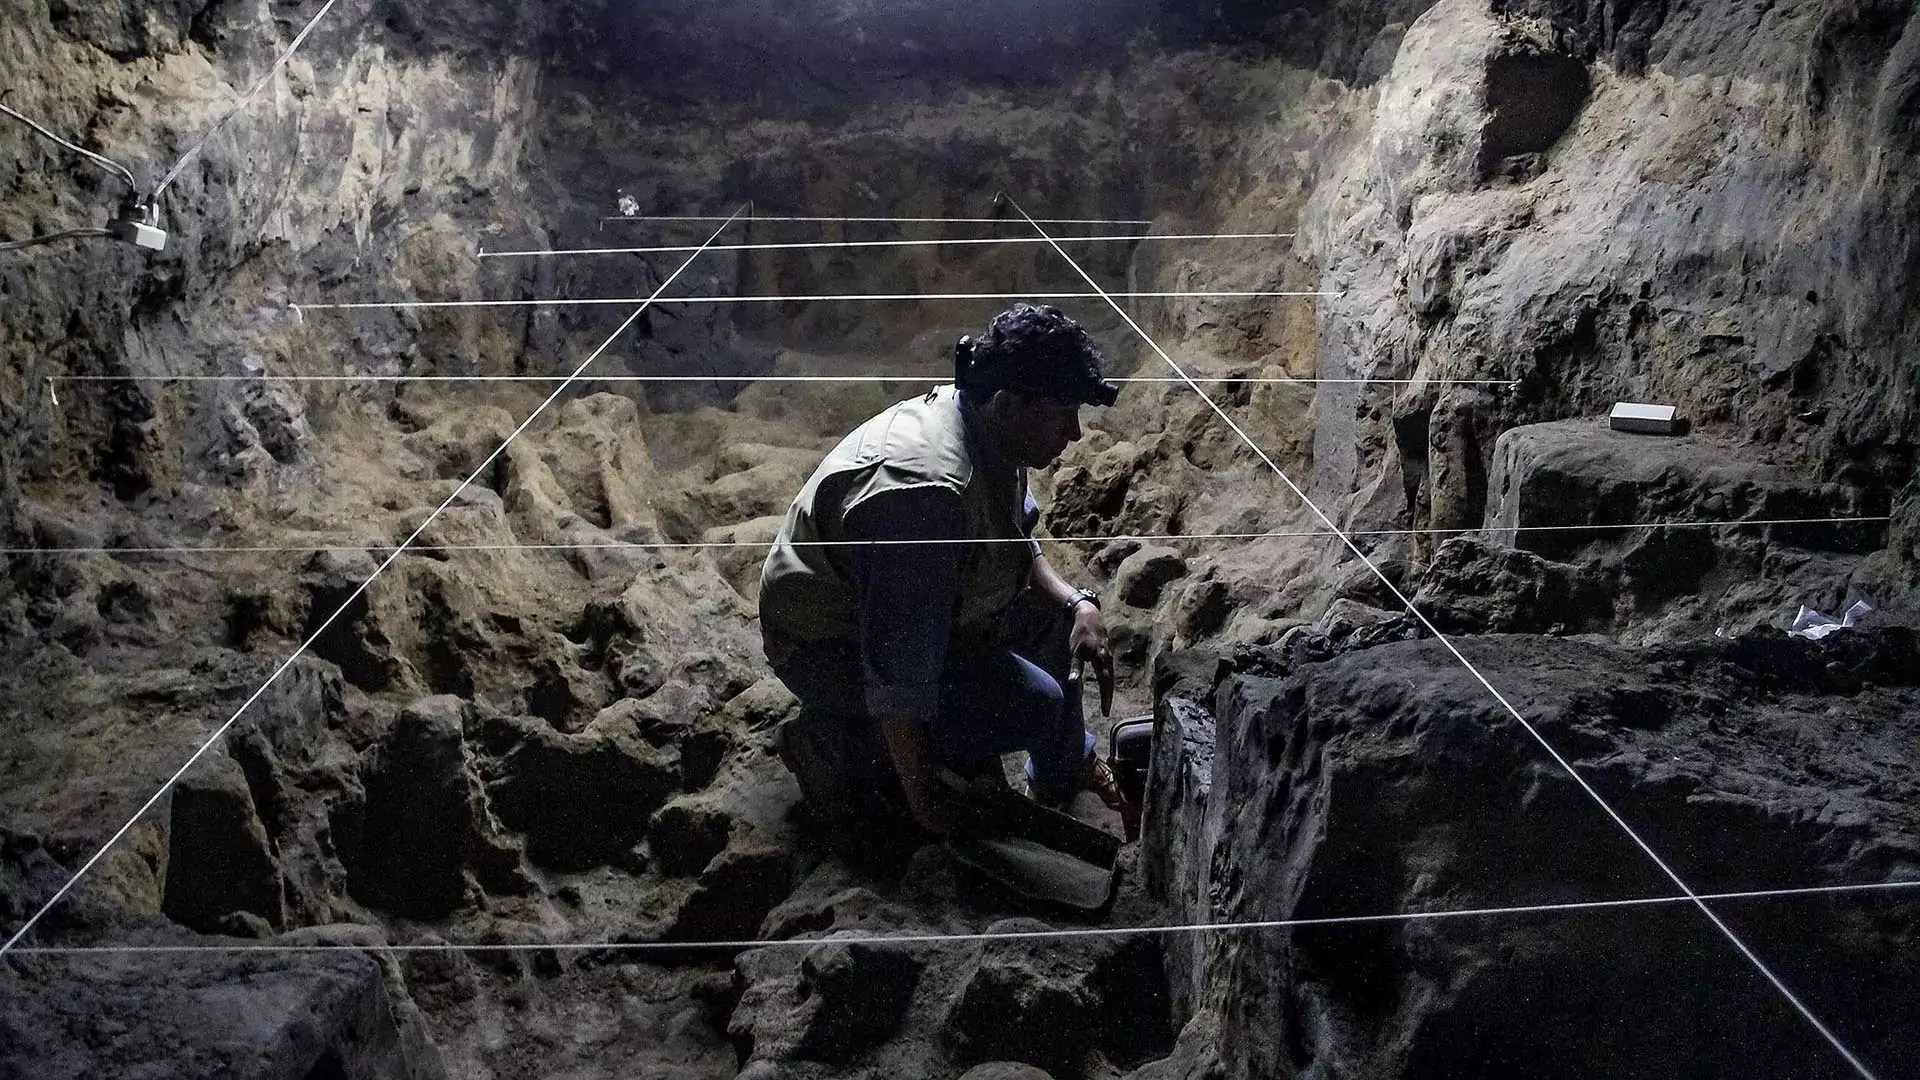 An archaeologist sits and analyzes rocks in a cave.